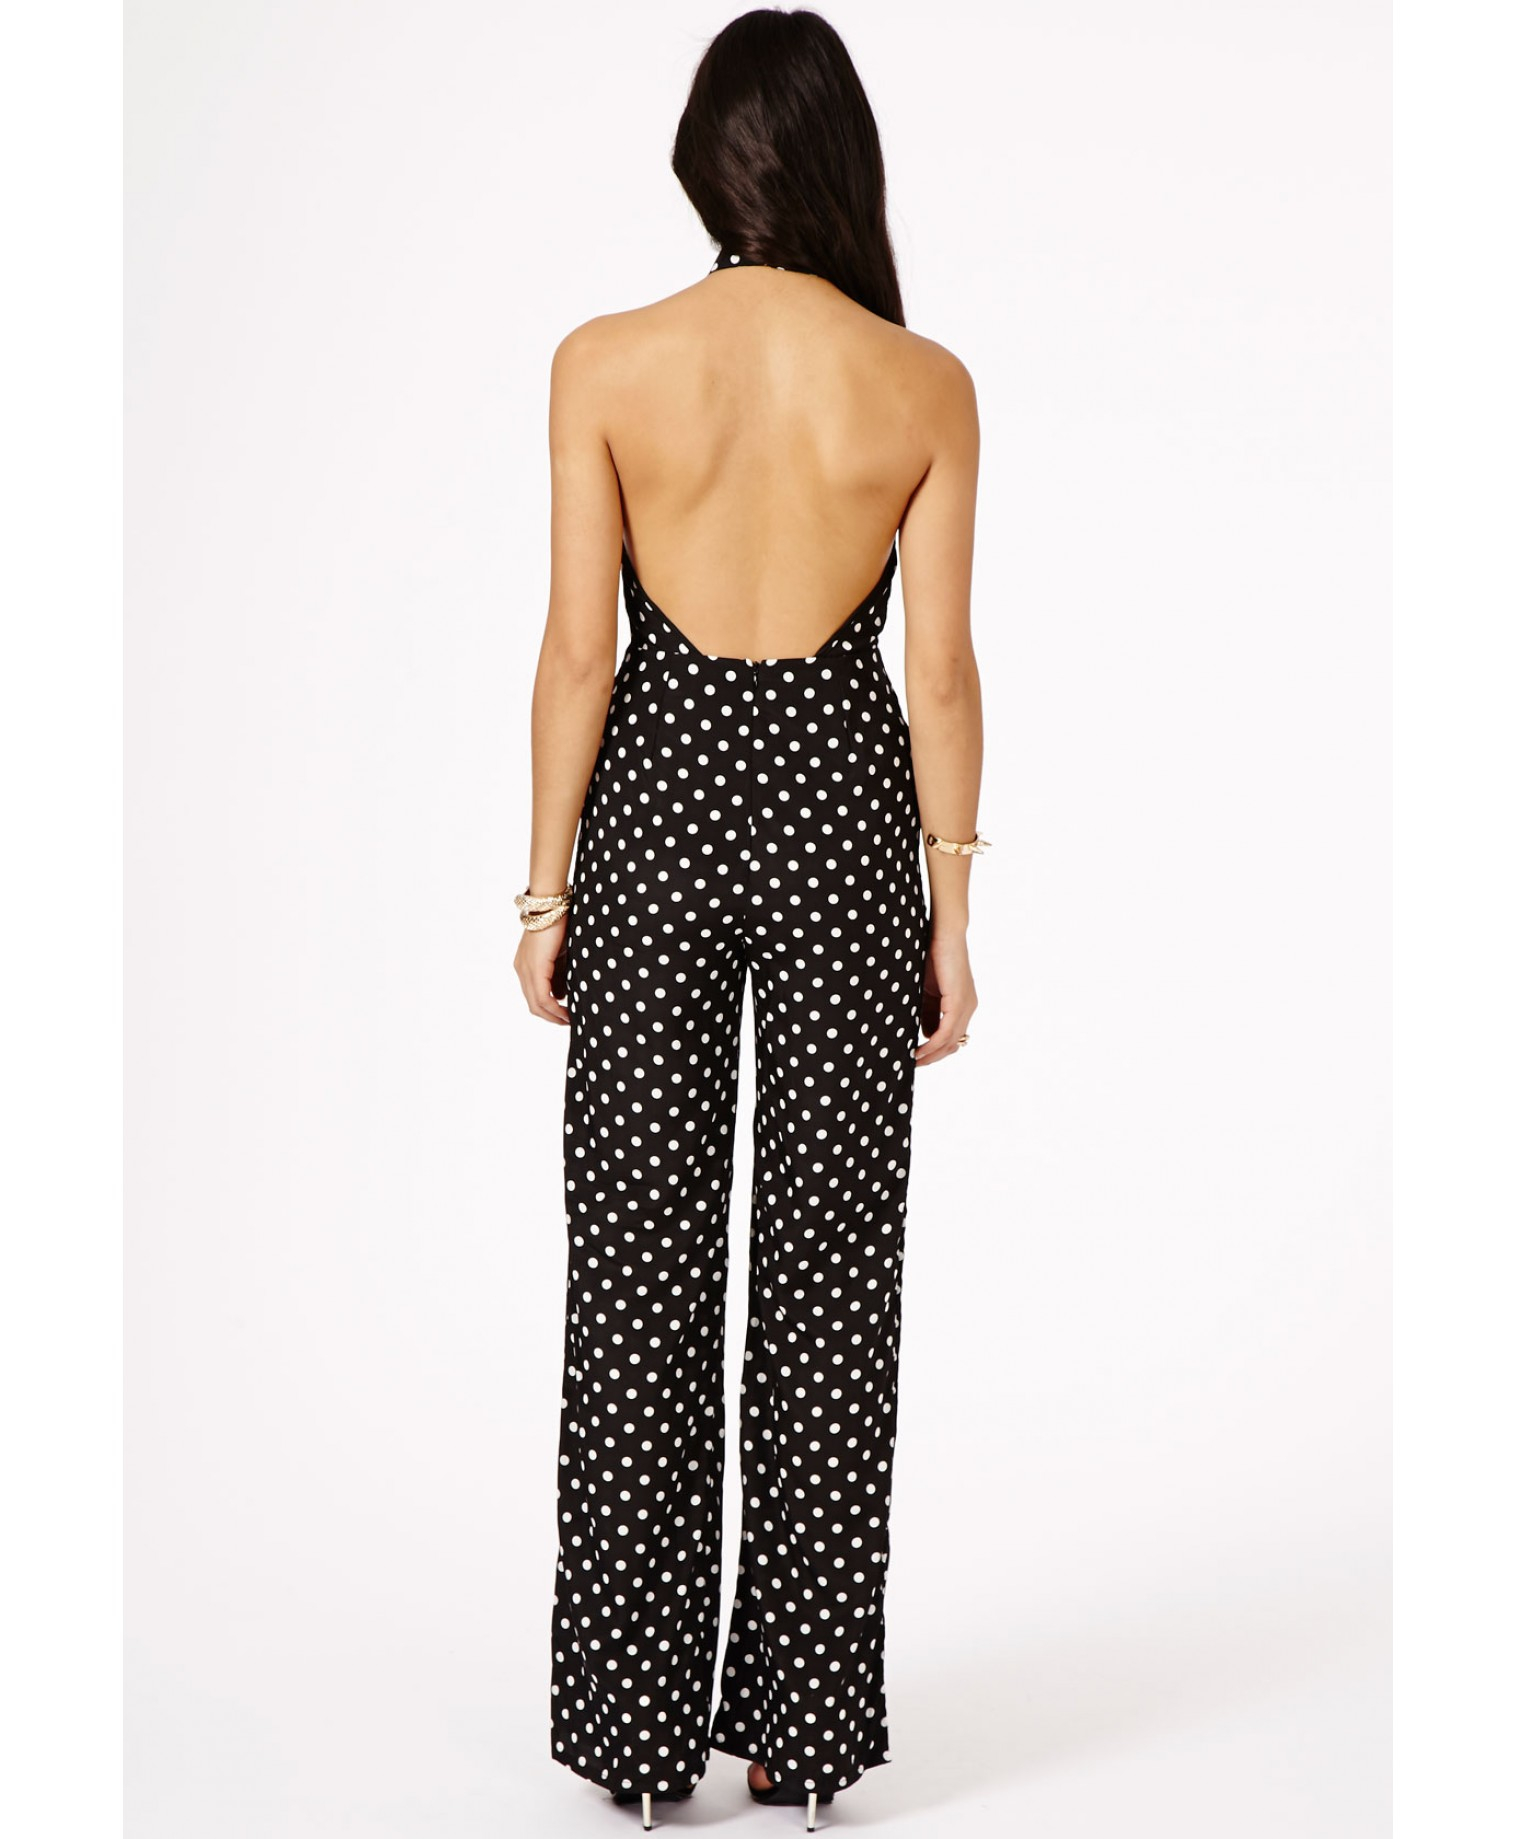 e326fd2f672 Missguided Maiko Polka Dot Jumpsuit in Black - Lyst